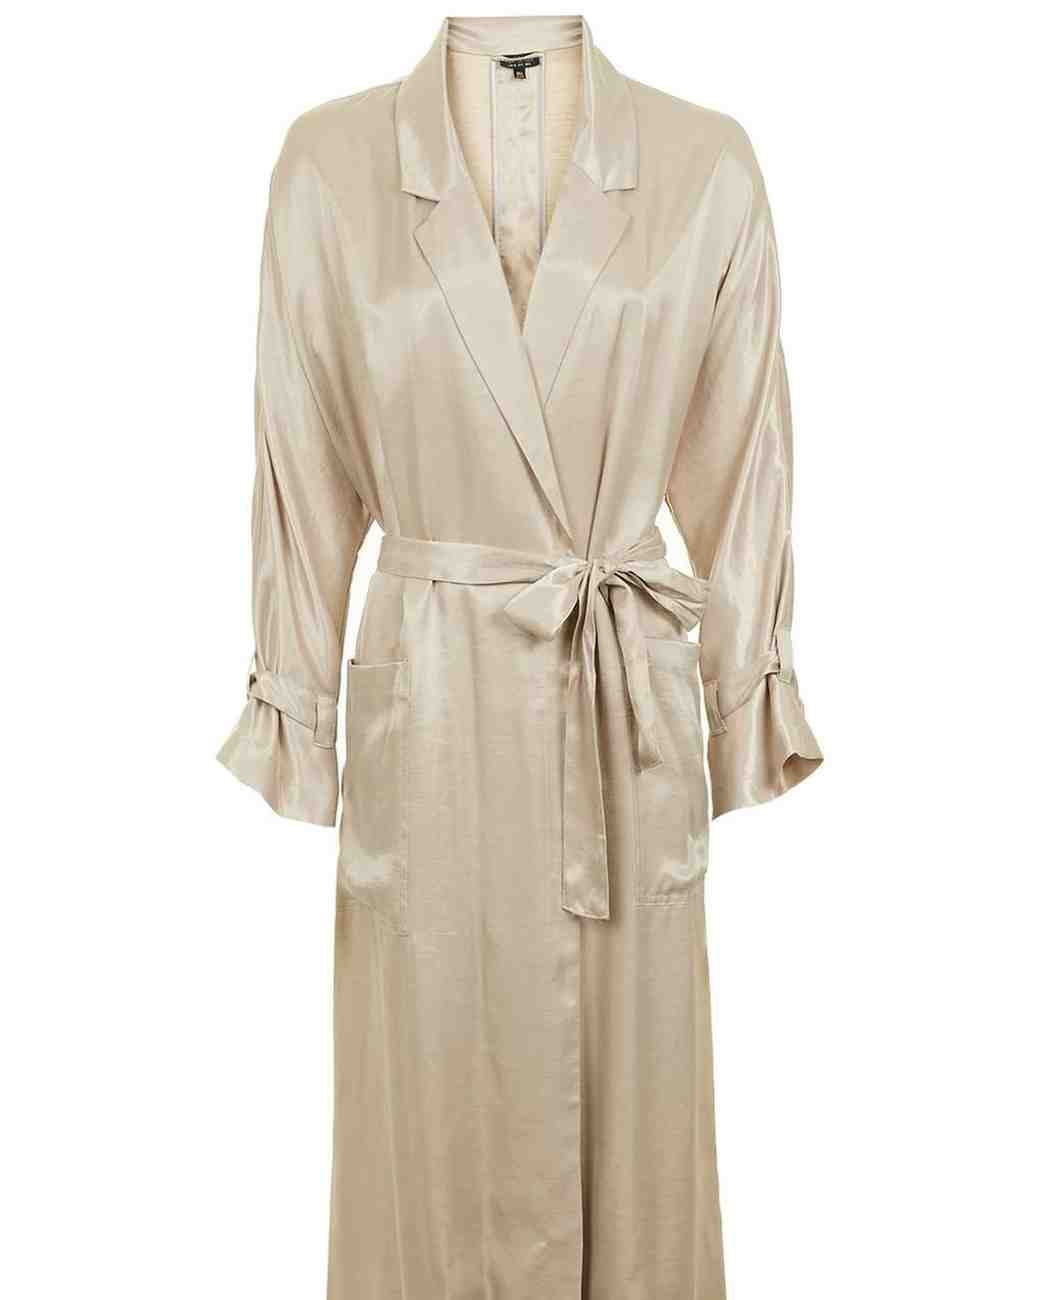 Topshop 80s Satin Duster Coat